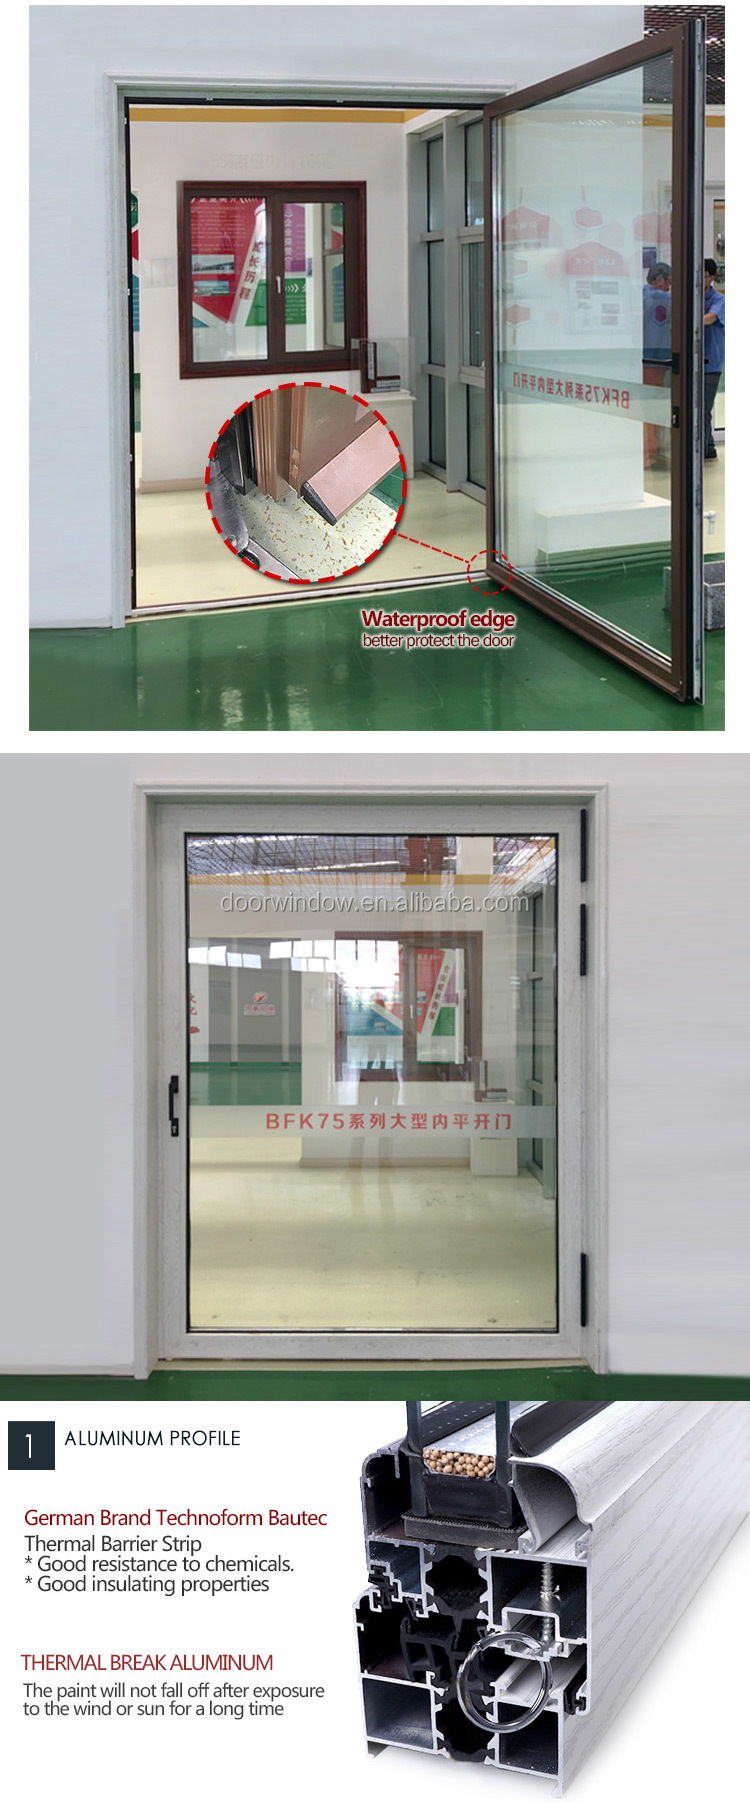 Super September Purchasing 2018 Hot Selling Front 180 degree interior glass hinge swing door Home Exterior Aluminum Glass Door